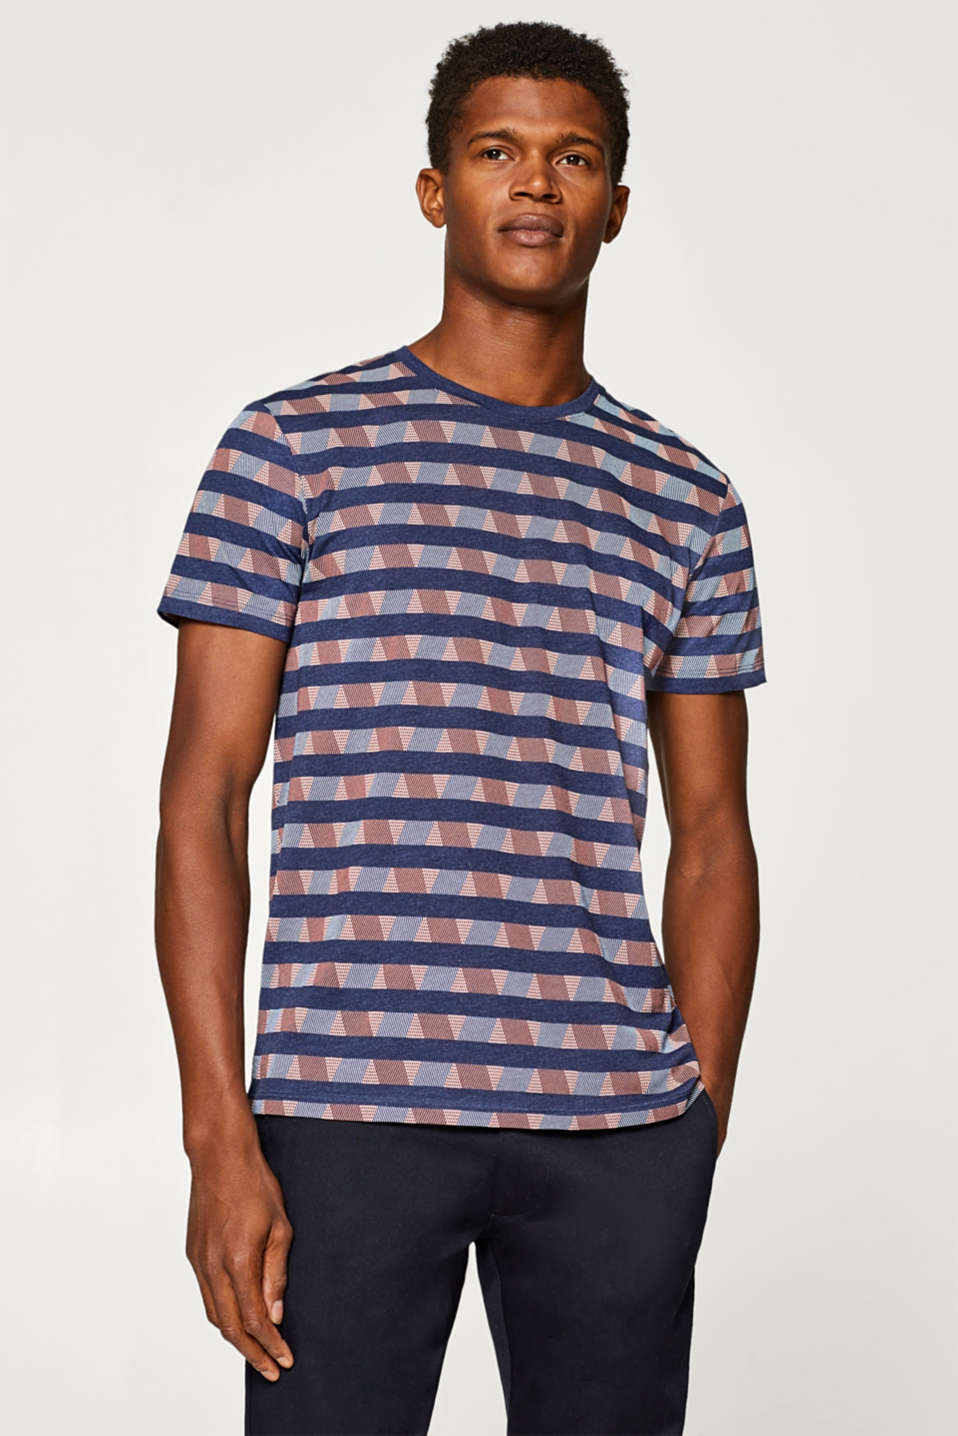 Esprit - Jersey top with an all-over print, made of blended cotton